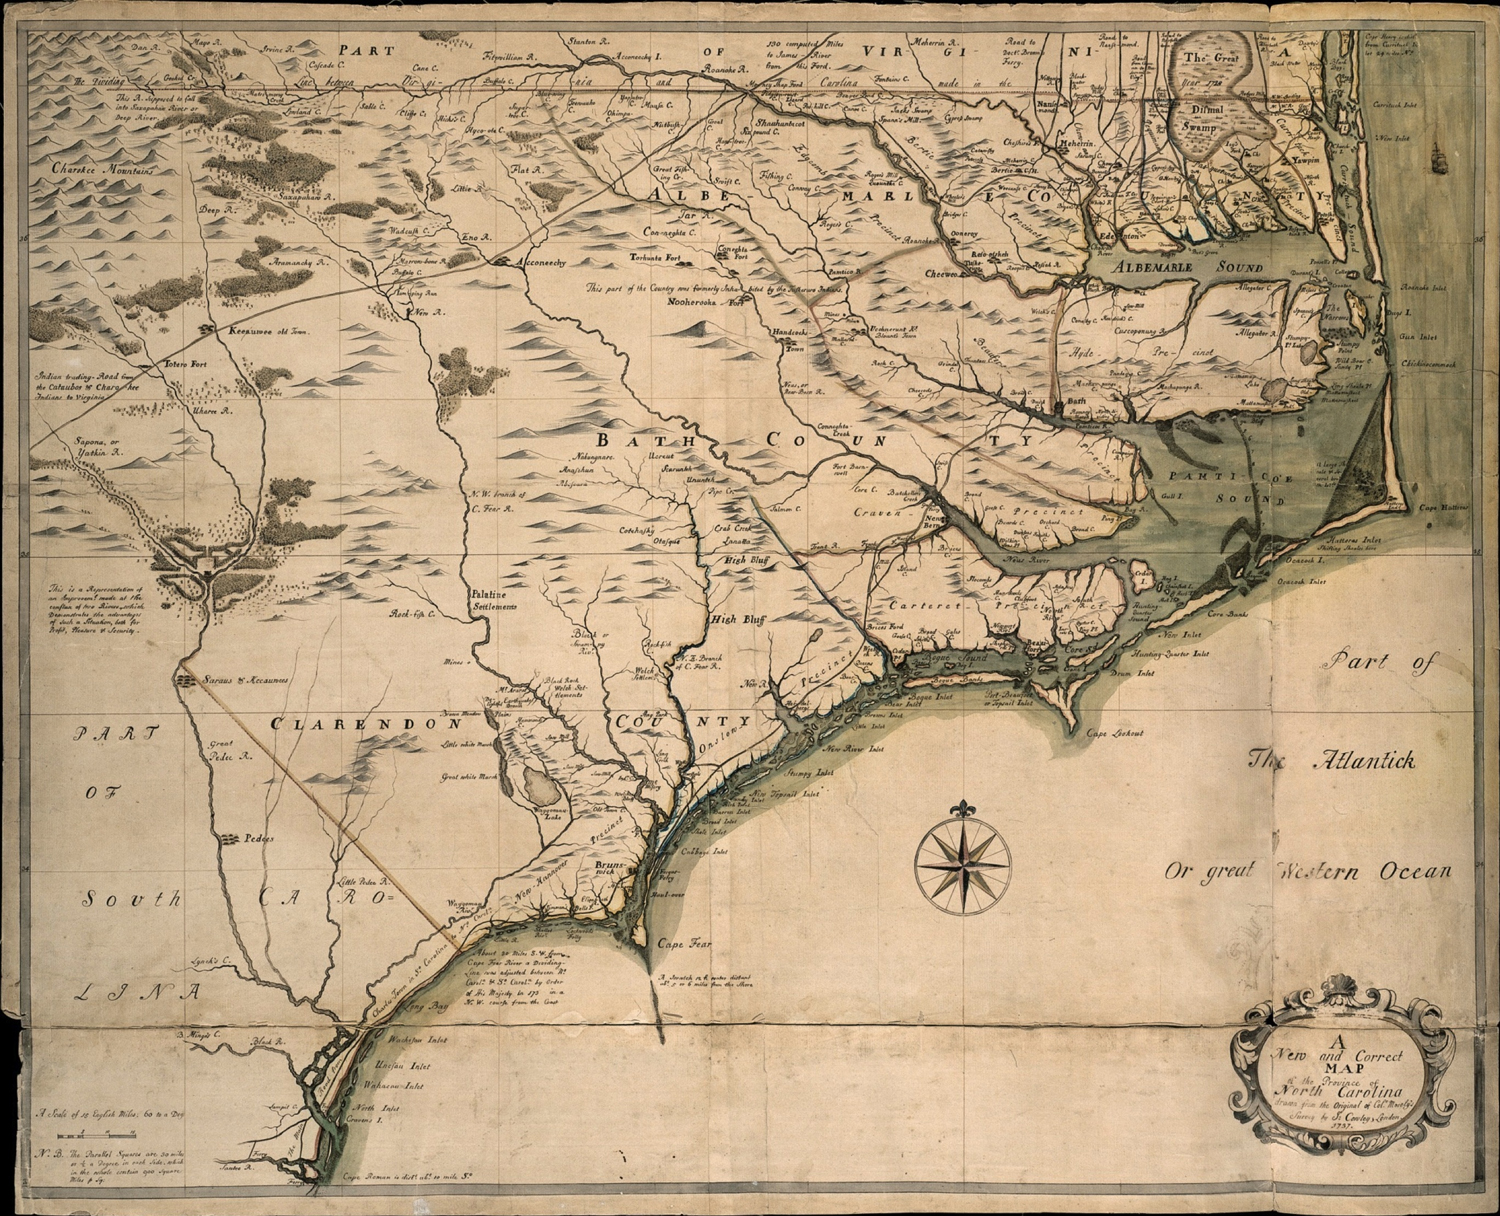 North Carolina Colony Map A New and Correct Map of the Province of North Carolina: The